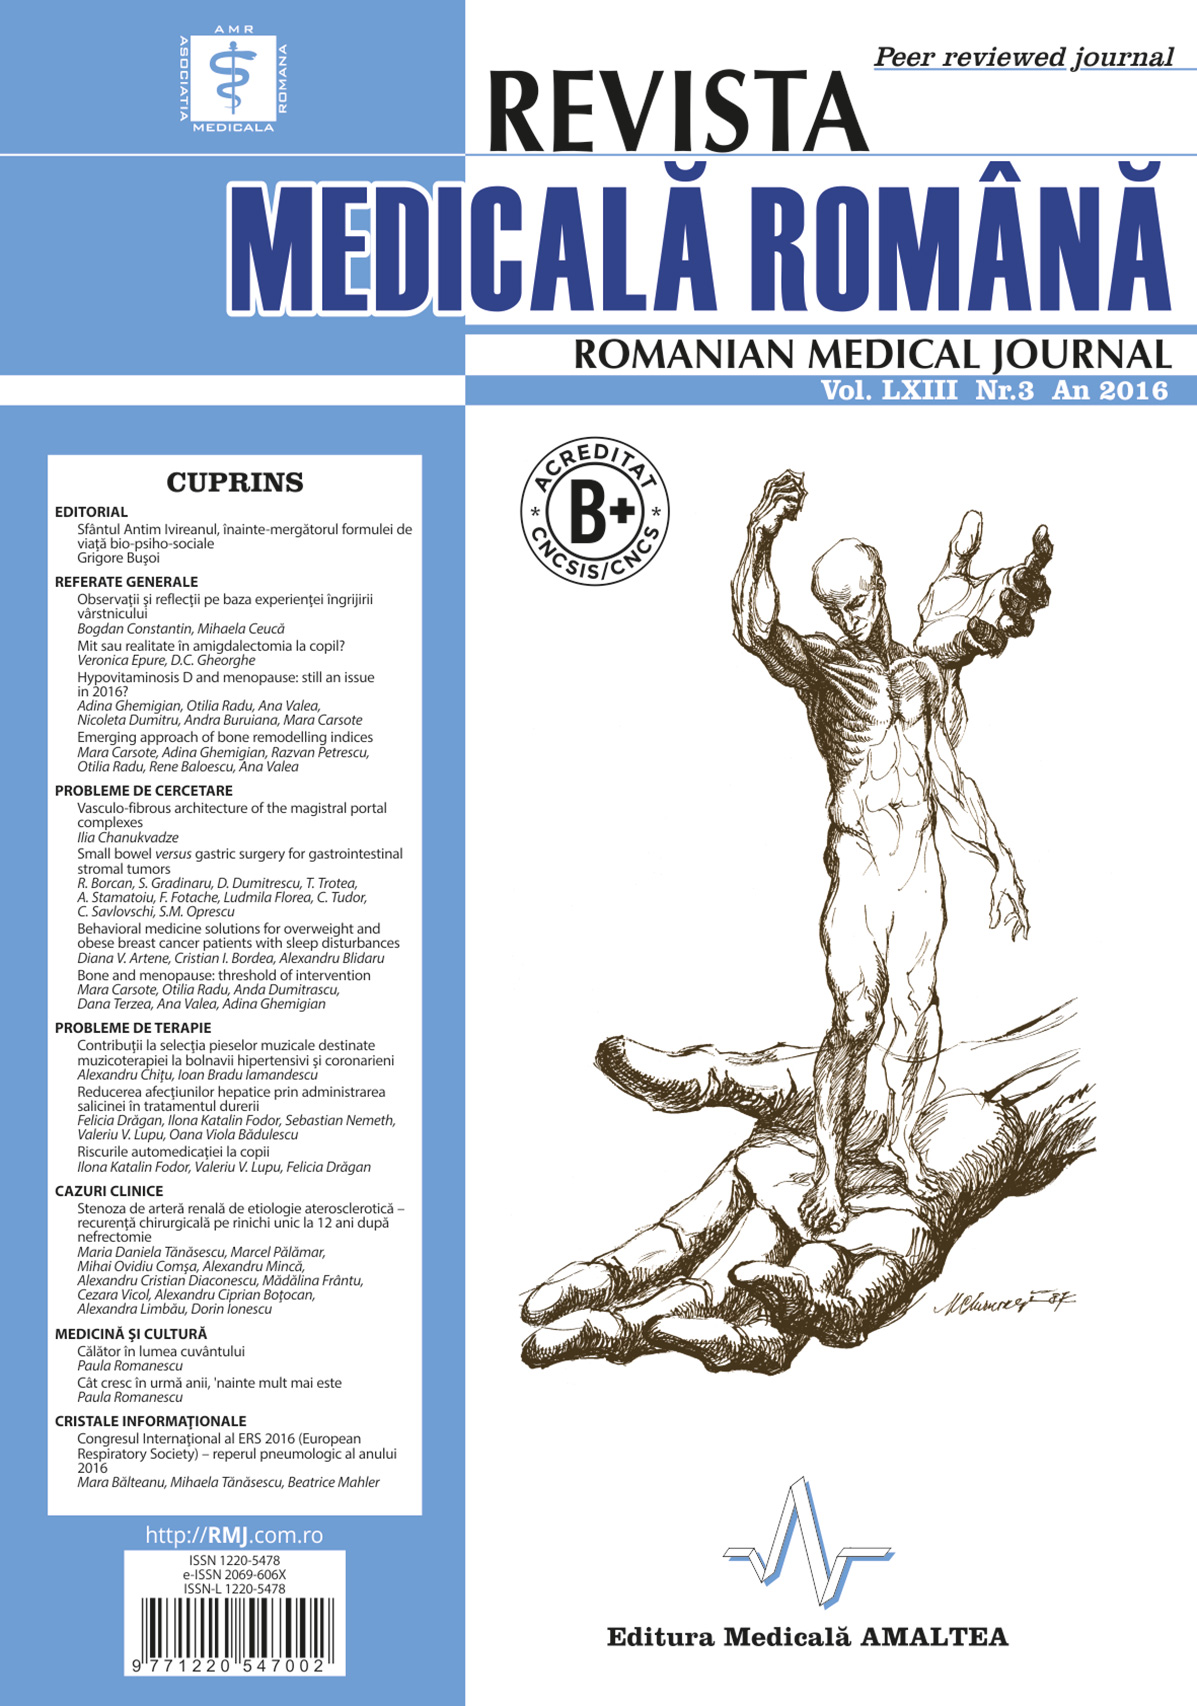 REVISTA MEDICALA ROMANA - Romanian Medical Journal, Vol. LXIII, Nr. 3, An 2016